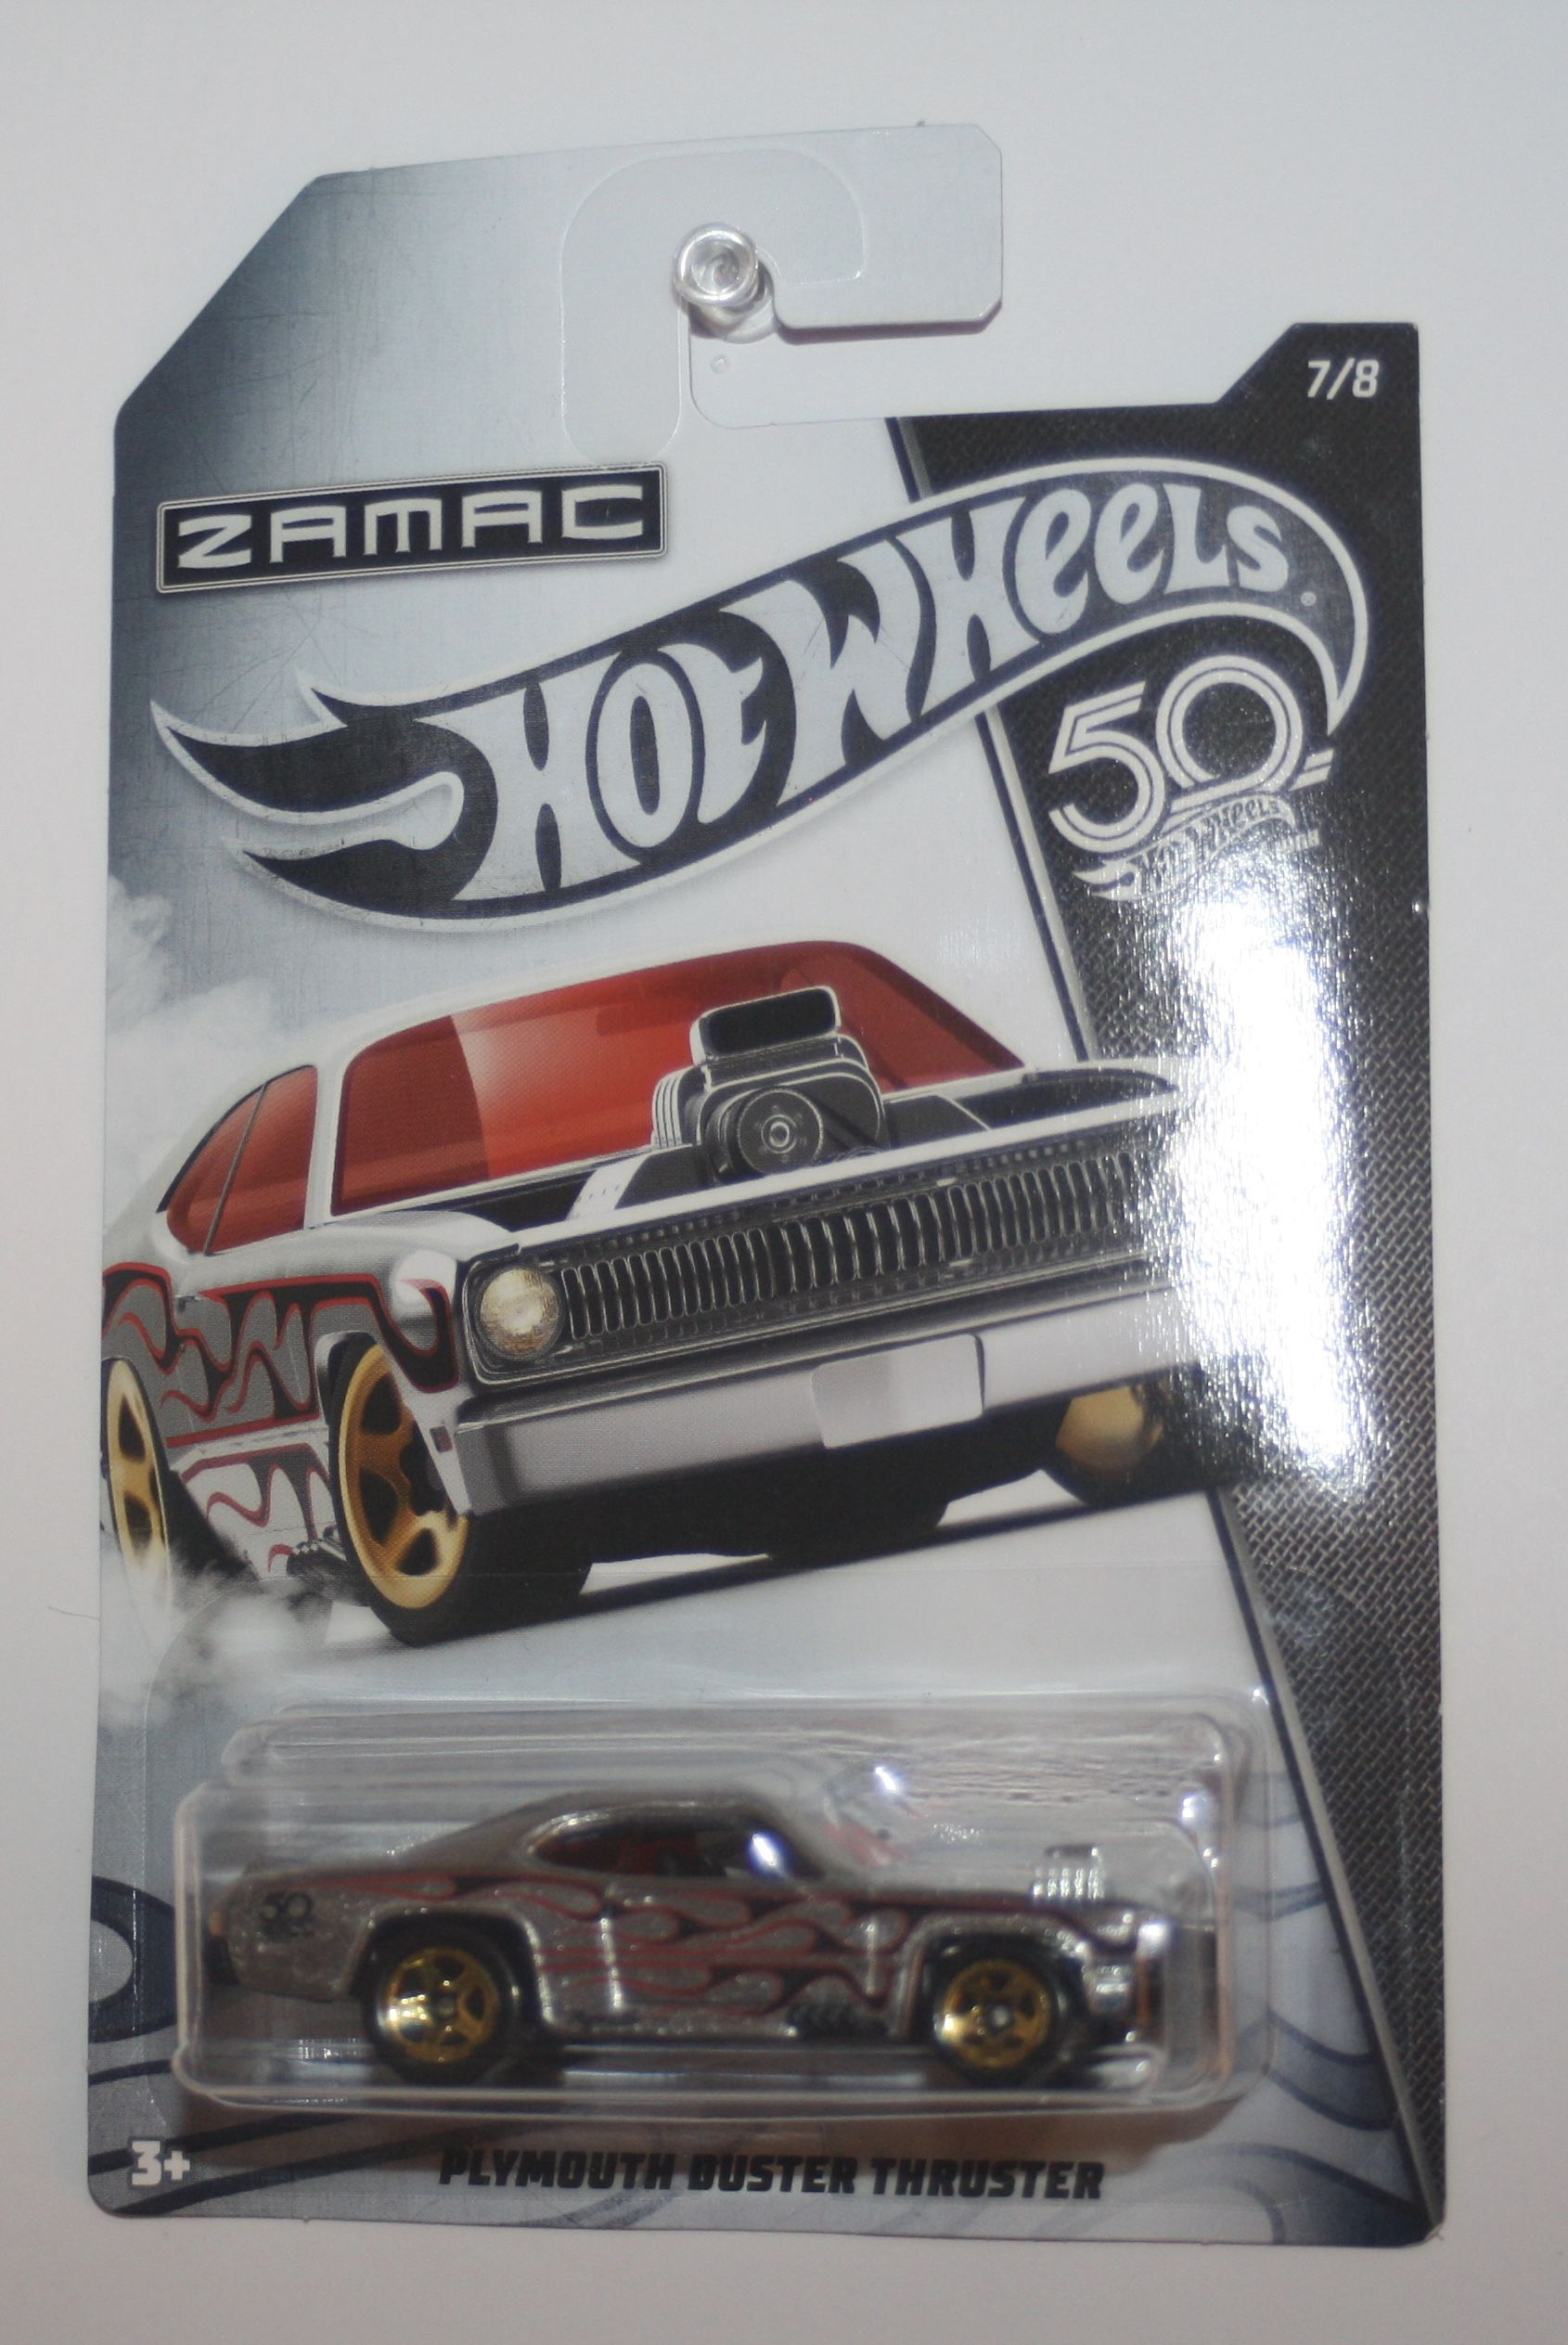 Hot Wheels Penske Vw Drag Bus And S39cool Lot Of 3 Loose Hotwheels Mnm Rare 2018 50th Anniversary Zamac 7 Plymouth Duster Thruster Walmart Card In Decent Shape